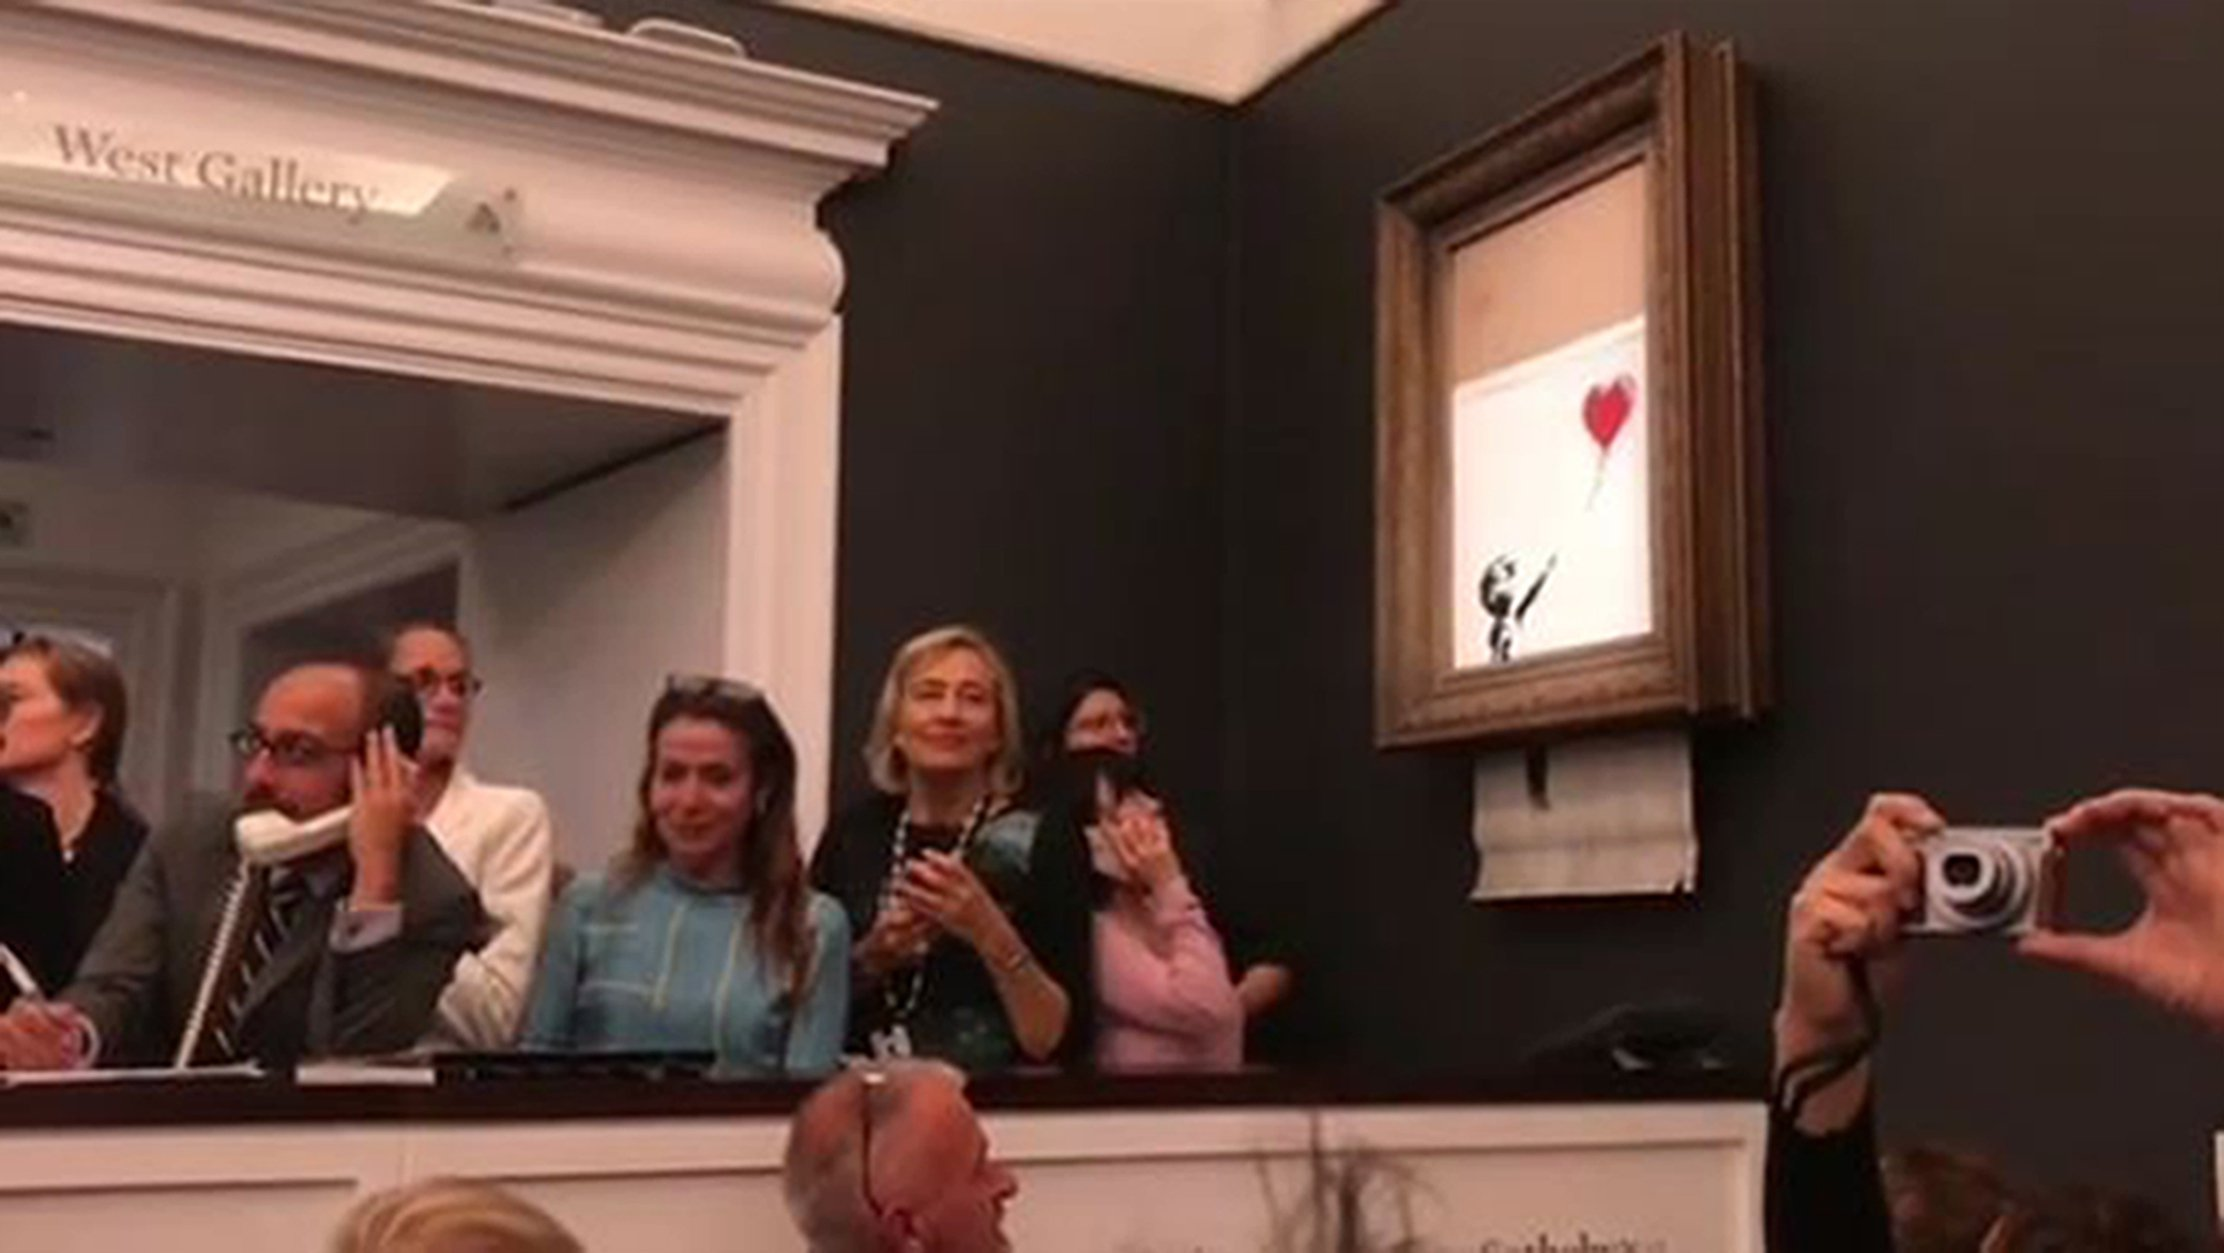 Undated screengrab from a video posted on Banky's instagram account showing the moment when the street artist's artwork, Girl With Balloon shredded itself after being sold for more than ?1 million at a Sotheby's auction. PRESS ASSOCIATION Photo. Issue date: Saturday October 6, 2018. See PA story ARTS Banksy. Photo credit should read: Banksy/PA Wire NOTE TO EDITORS: This handout photo may only be used in for editorial reporting purposes for the contemporaneous illustration of events, things or the people in the image or facts mentioned in the caption. Reuse of the picture may require further permission from the copyright holder.